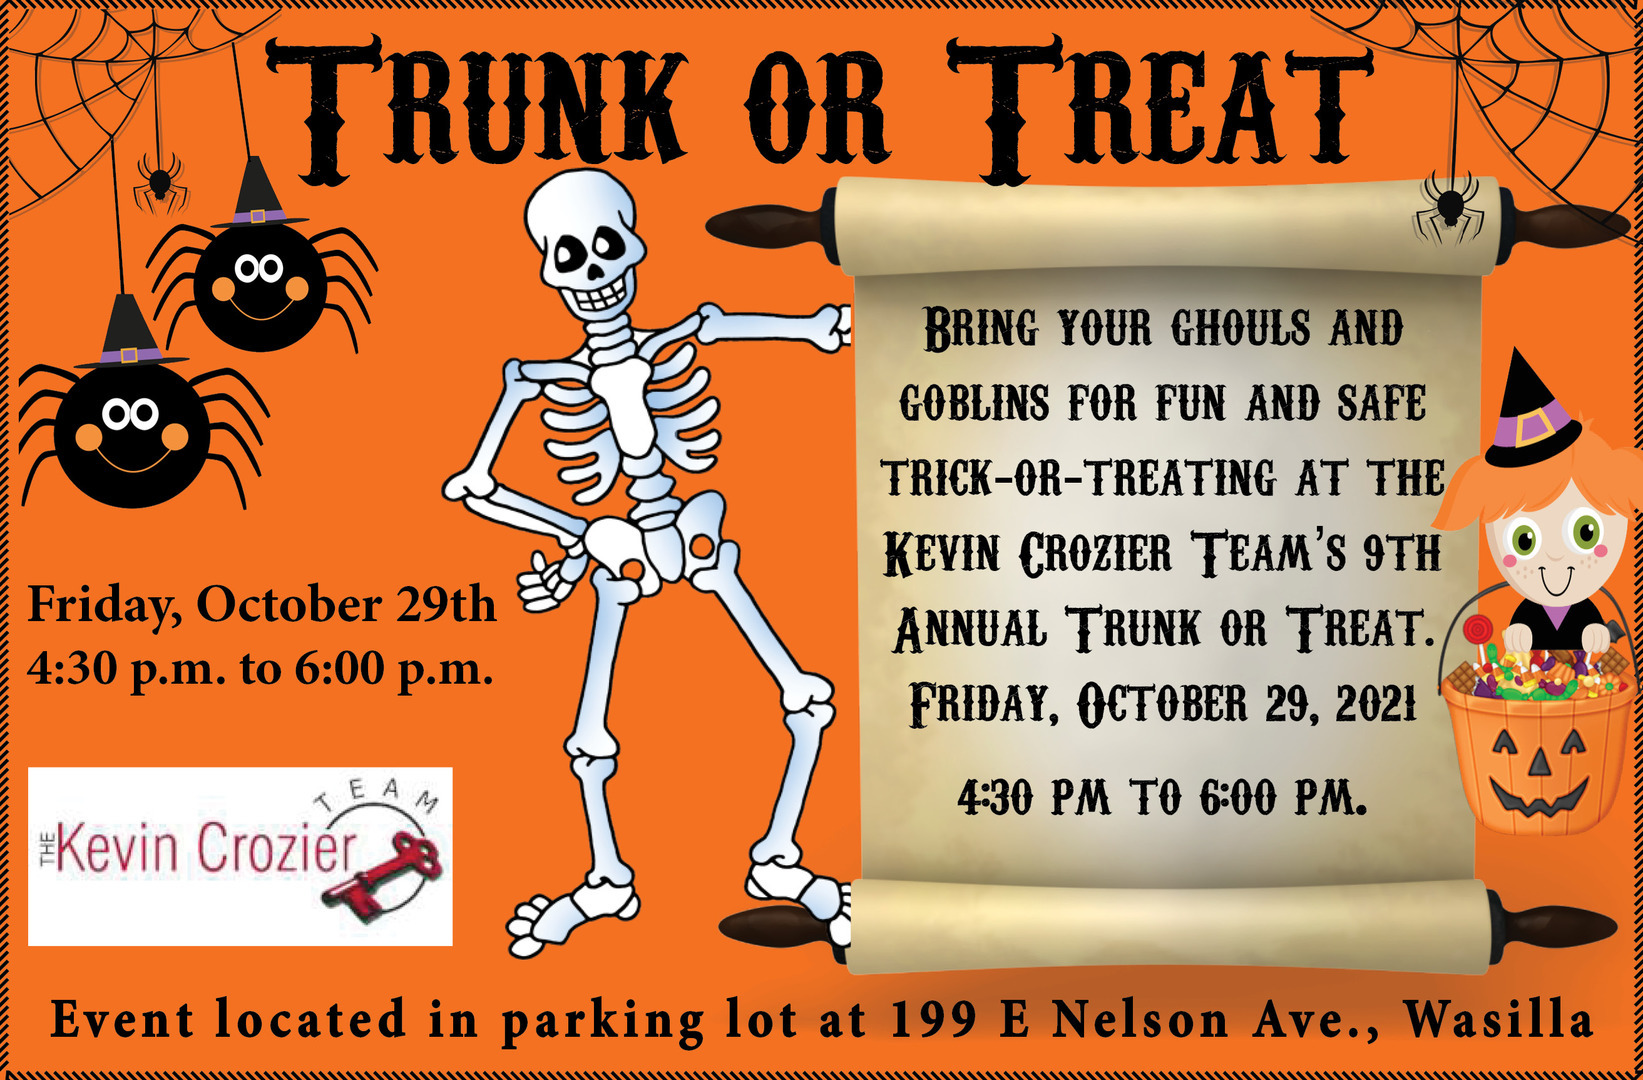 Trunk or Treat in Wasilla - Hosted by The Kevin Crozier Team